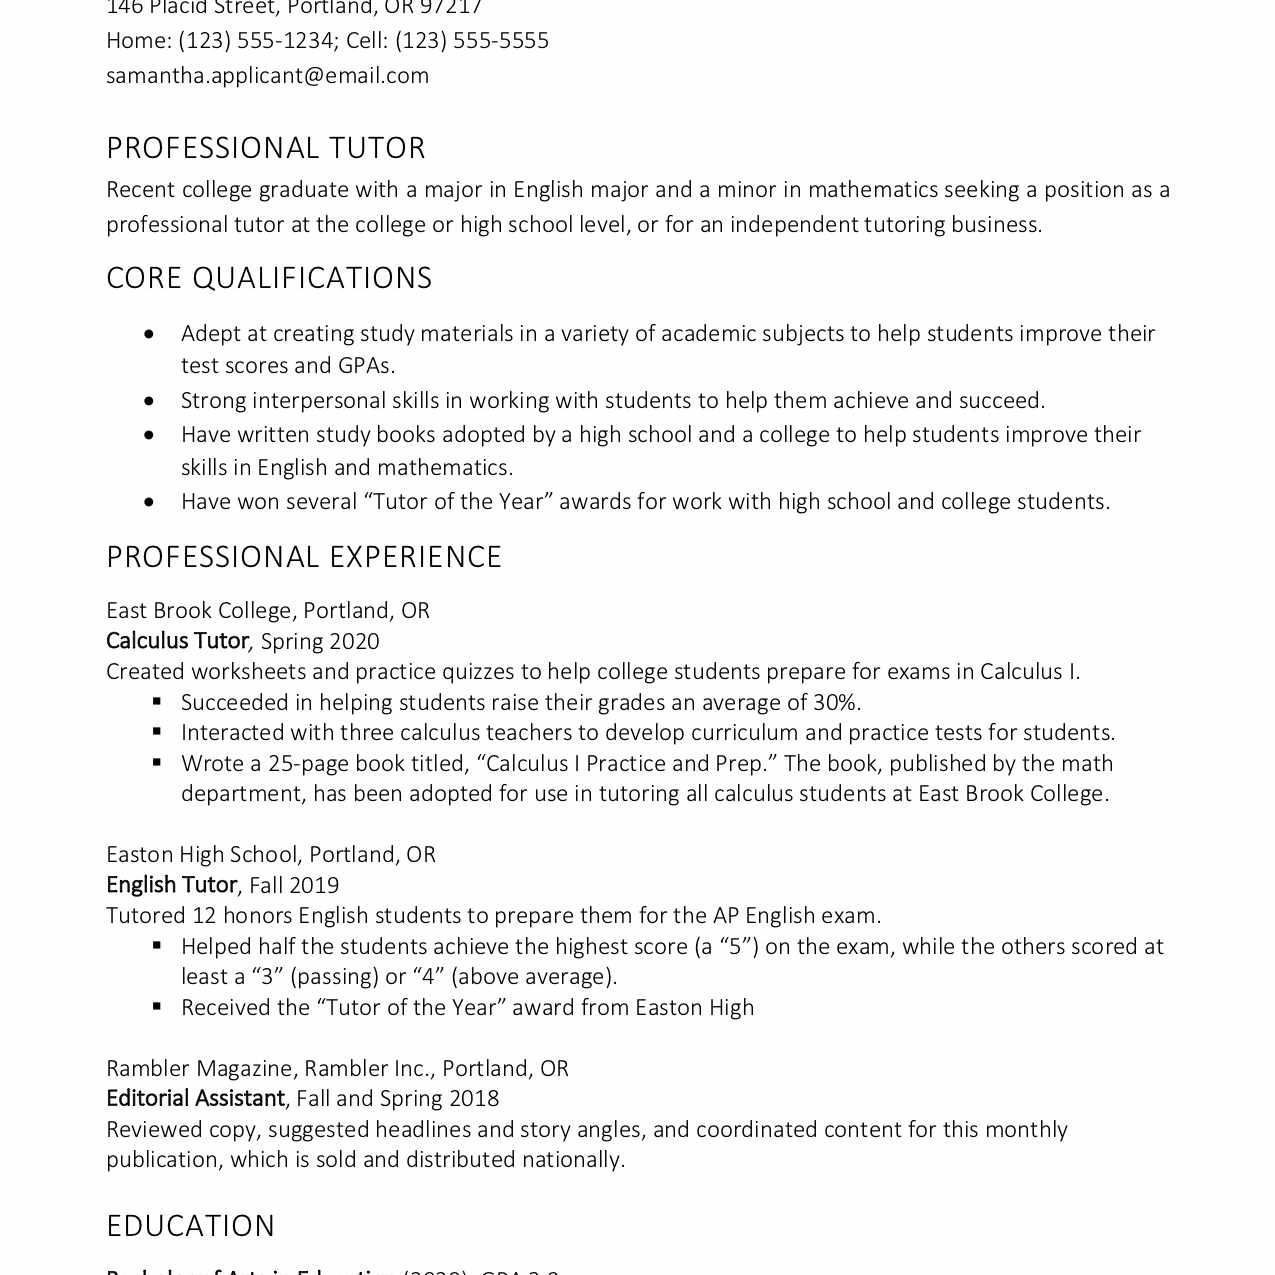 tutor resume and cover letter examples description samanthaapplicant personal assistant Resume Tutor Resume Description